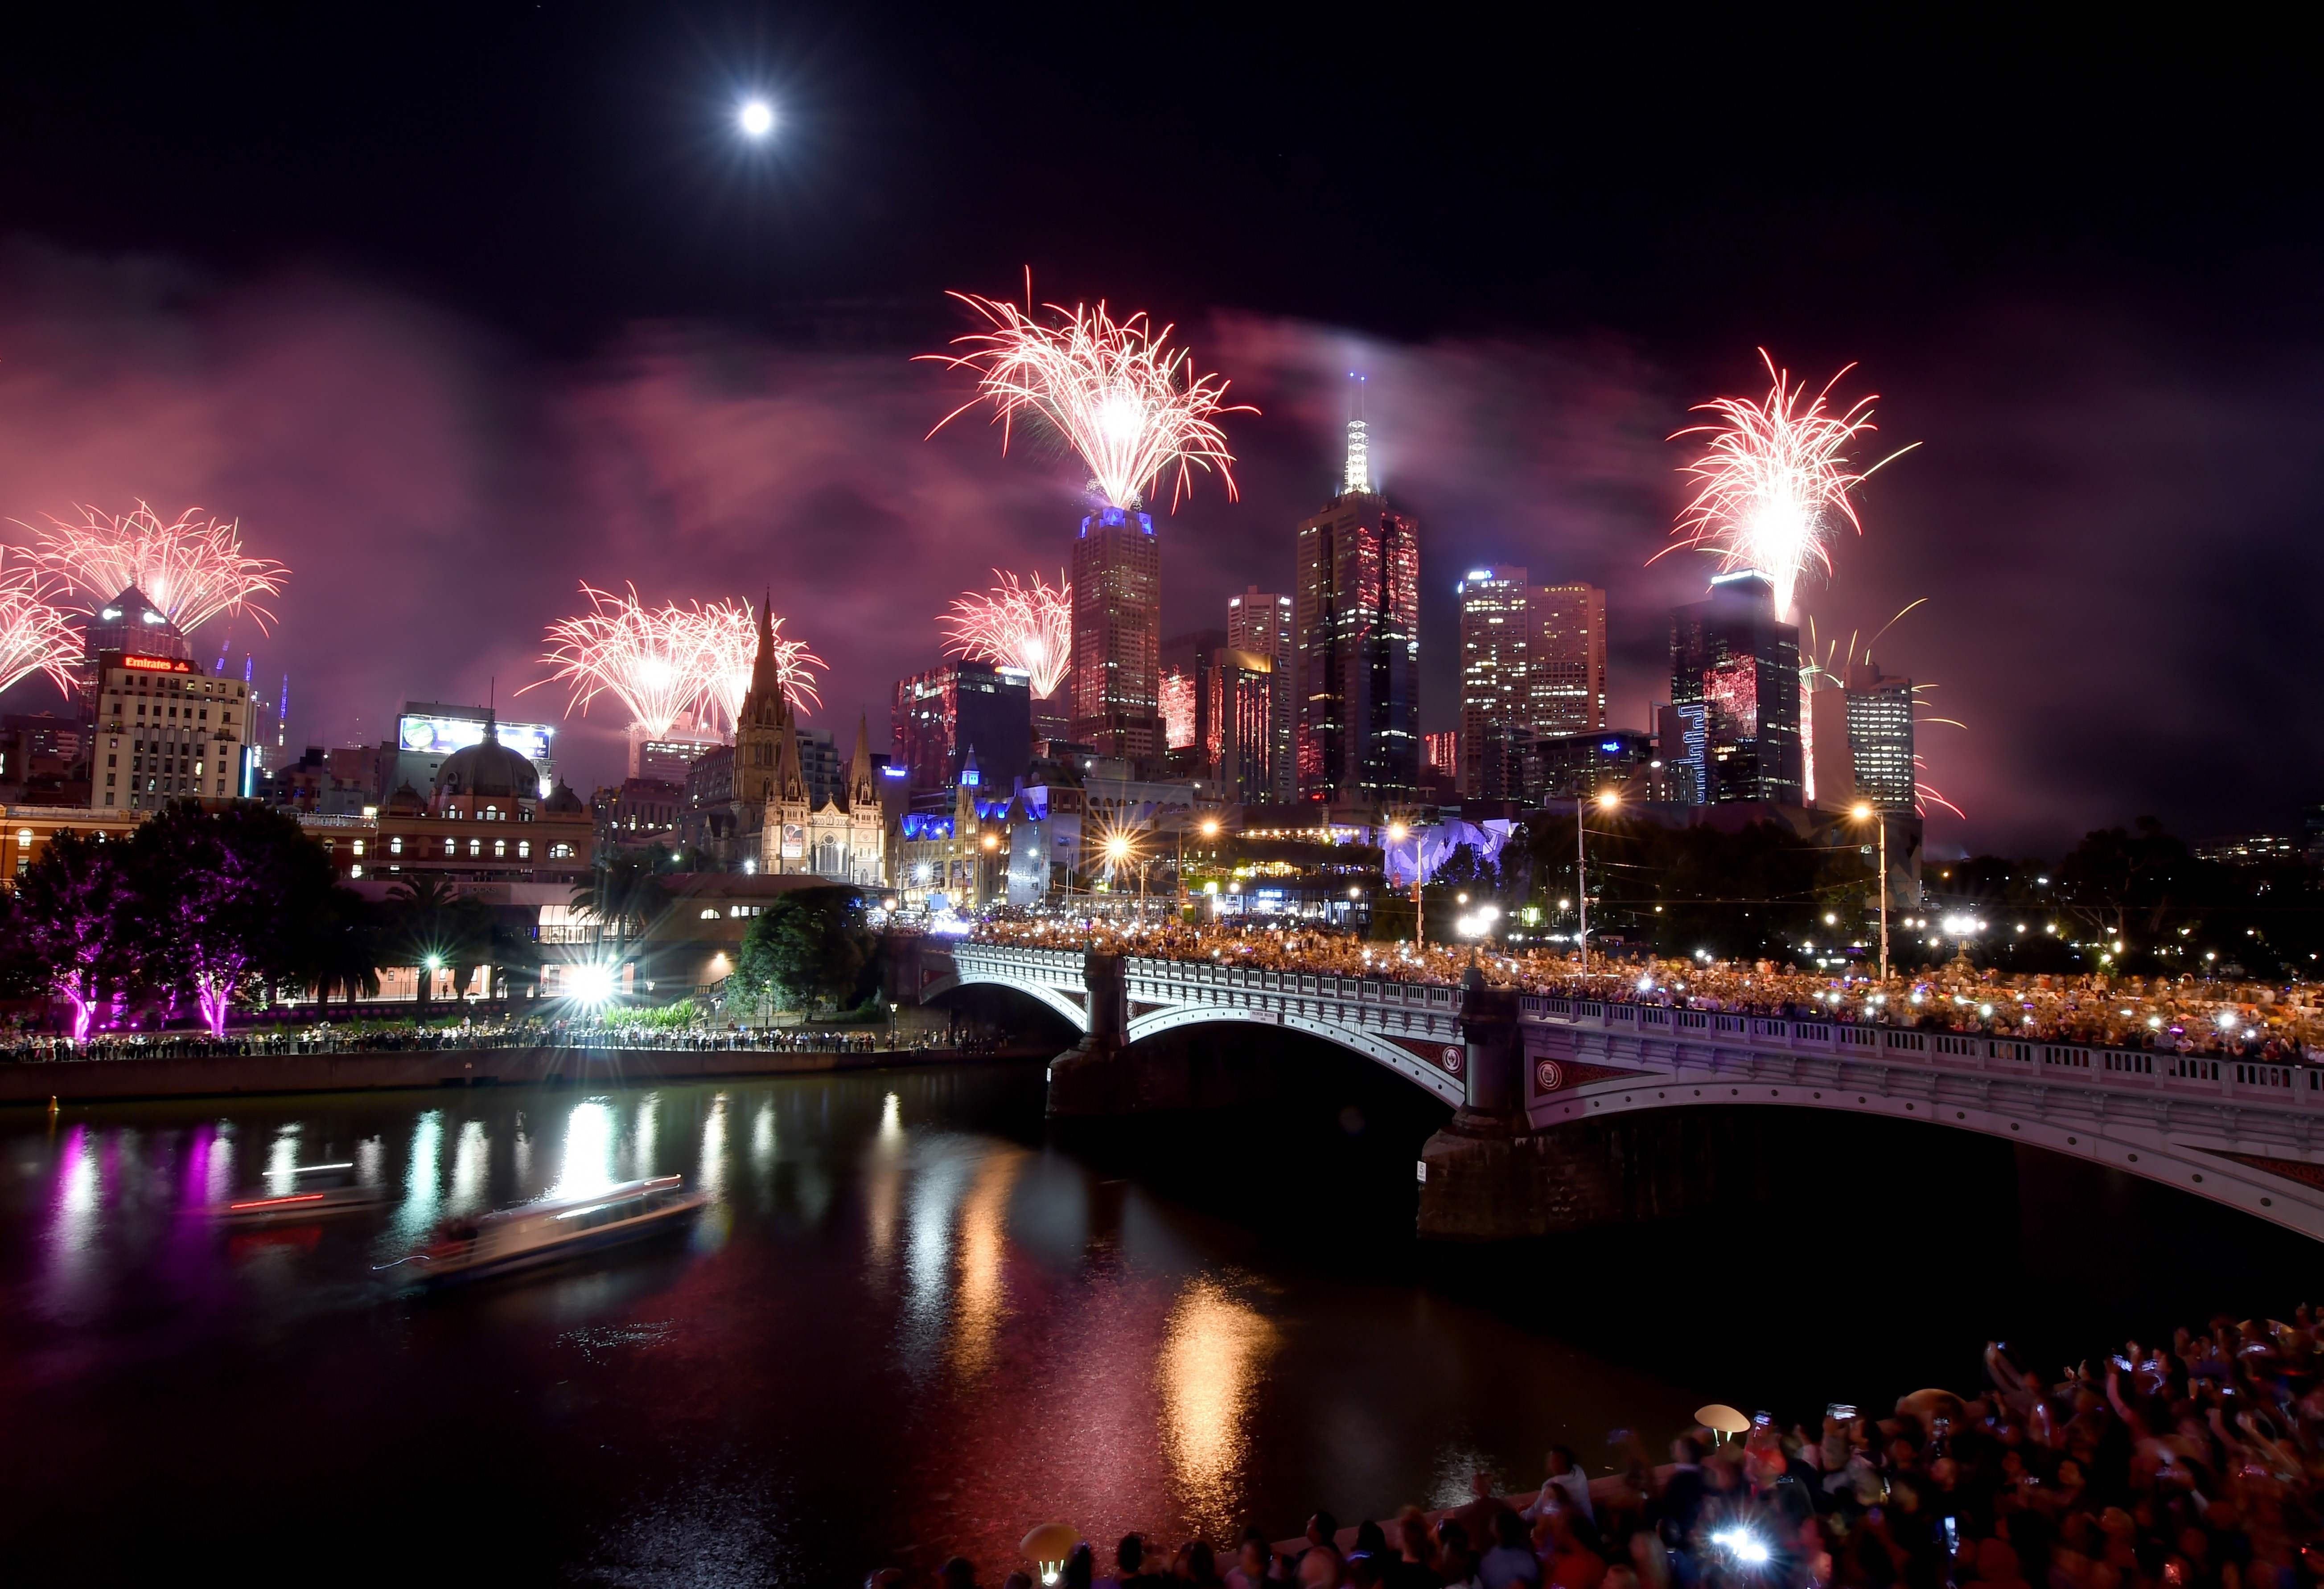 New Year's Eve 2017 celebrations around the world in